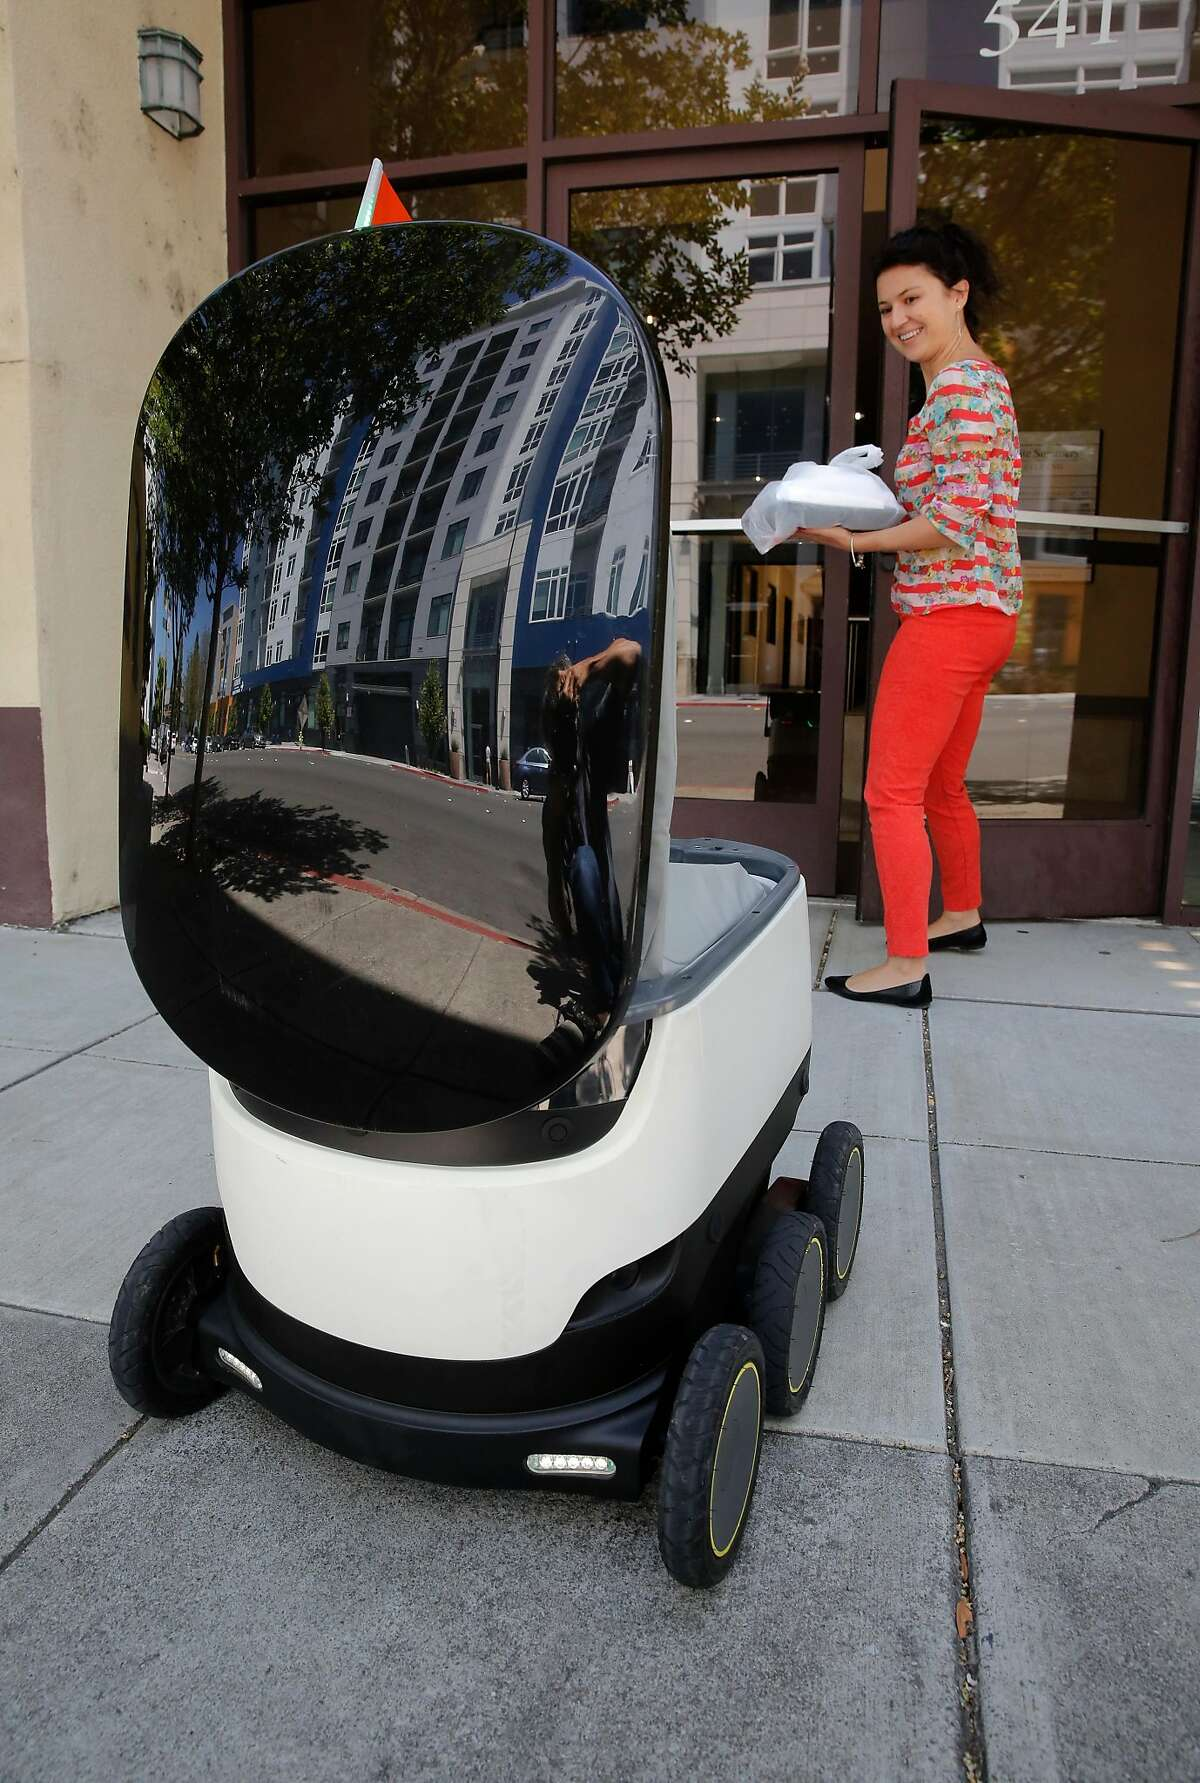 Elena Savateyev, with White Summers Caffee & James, an IP technologies law firm, picks up a food delivery from one of the robots operated by Starship Technologies in downtown Redwood City, Ca., on Tuesday July 18, 2017.